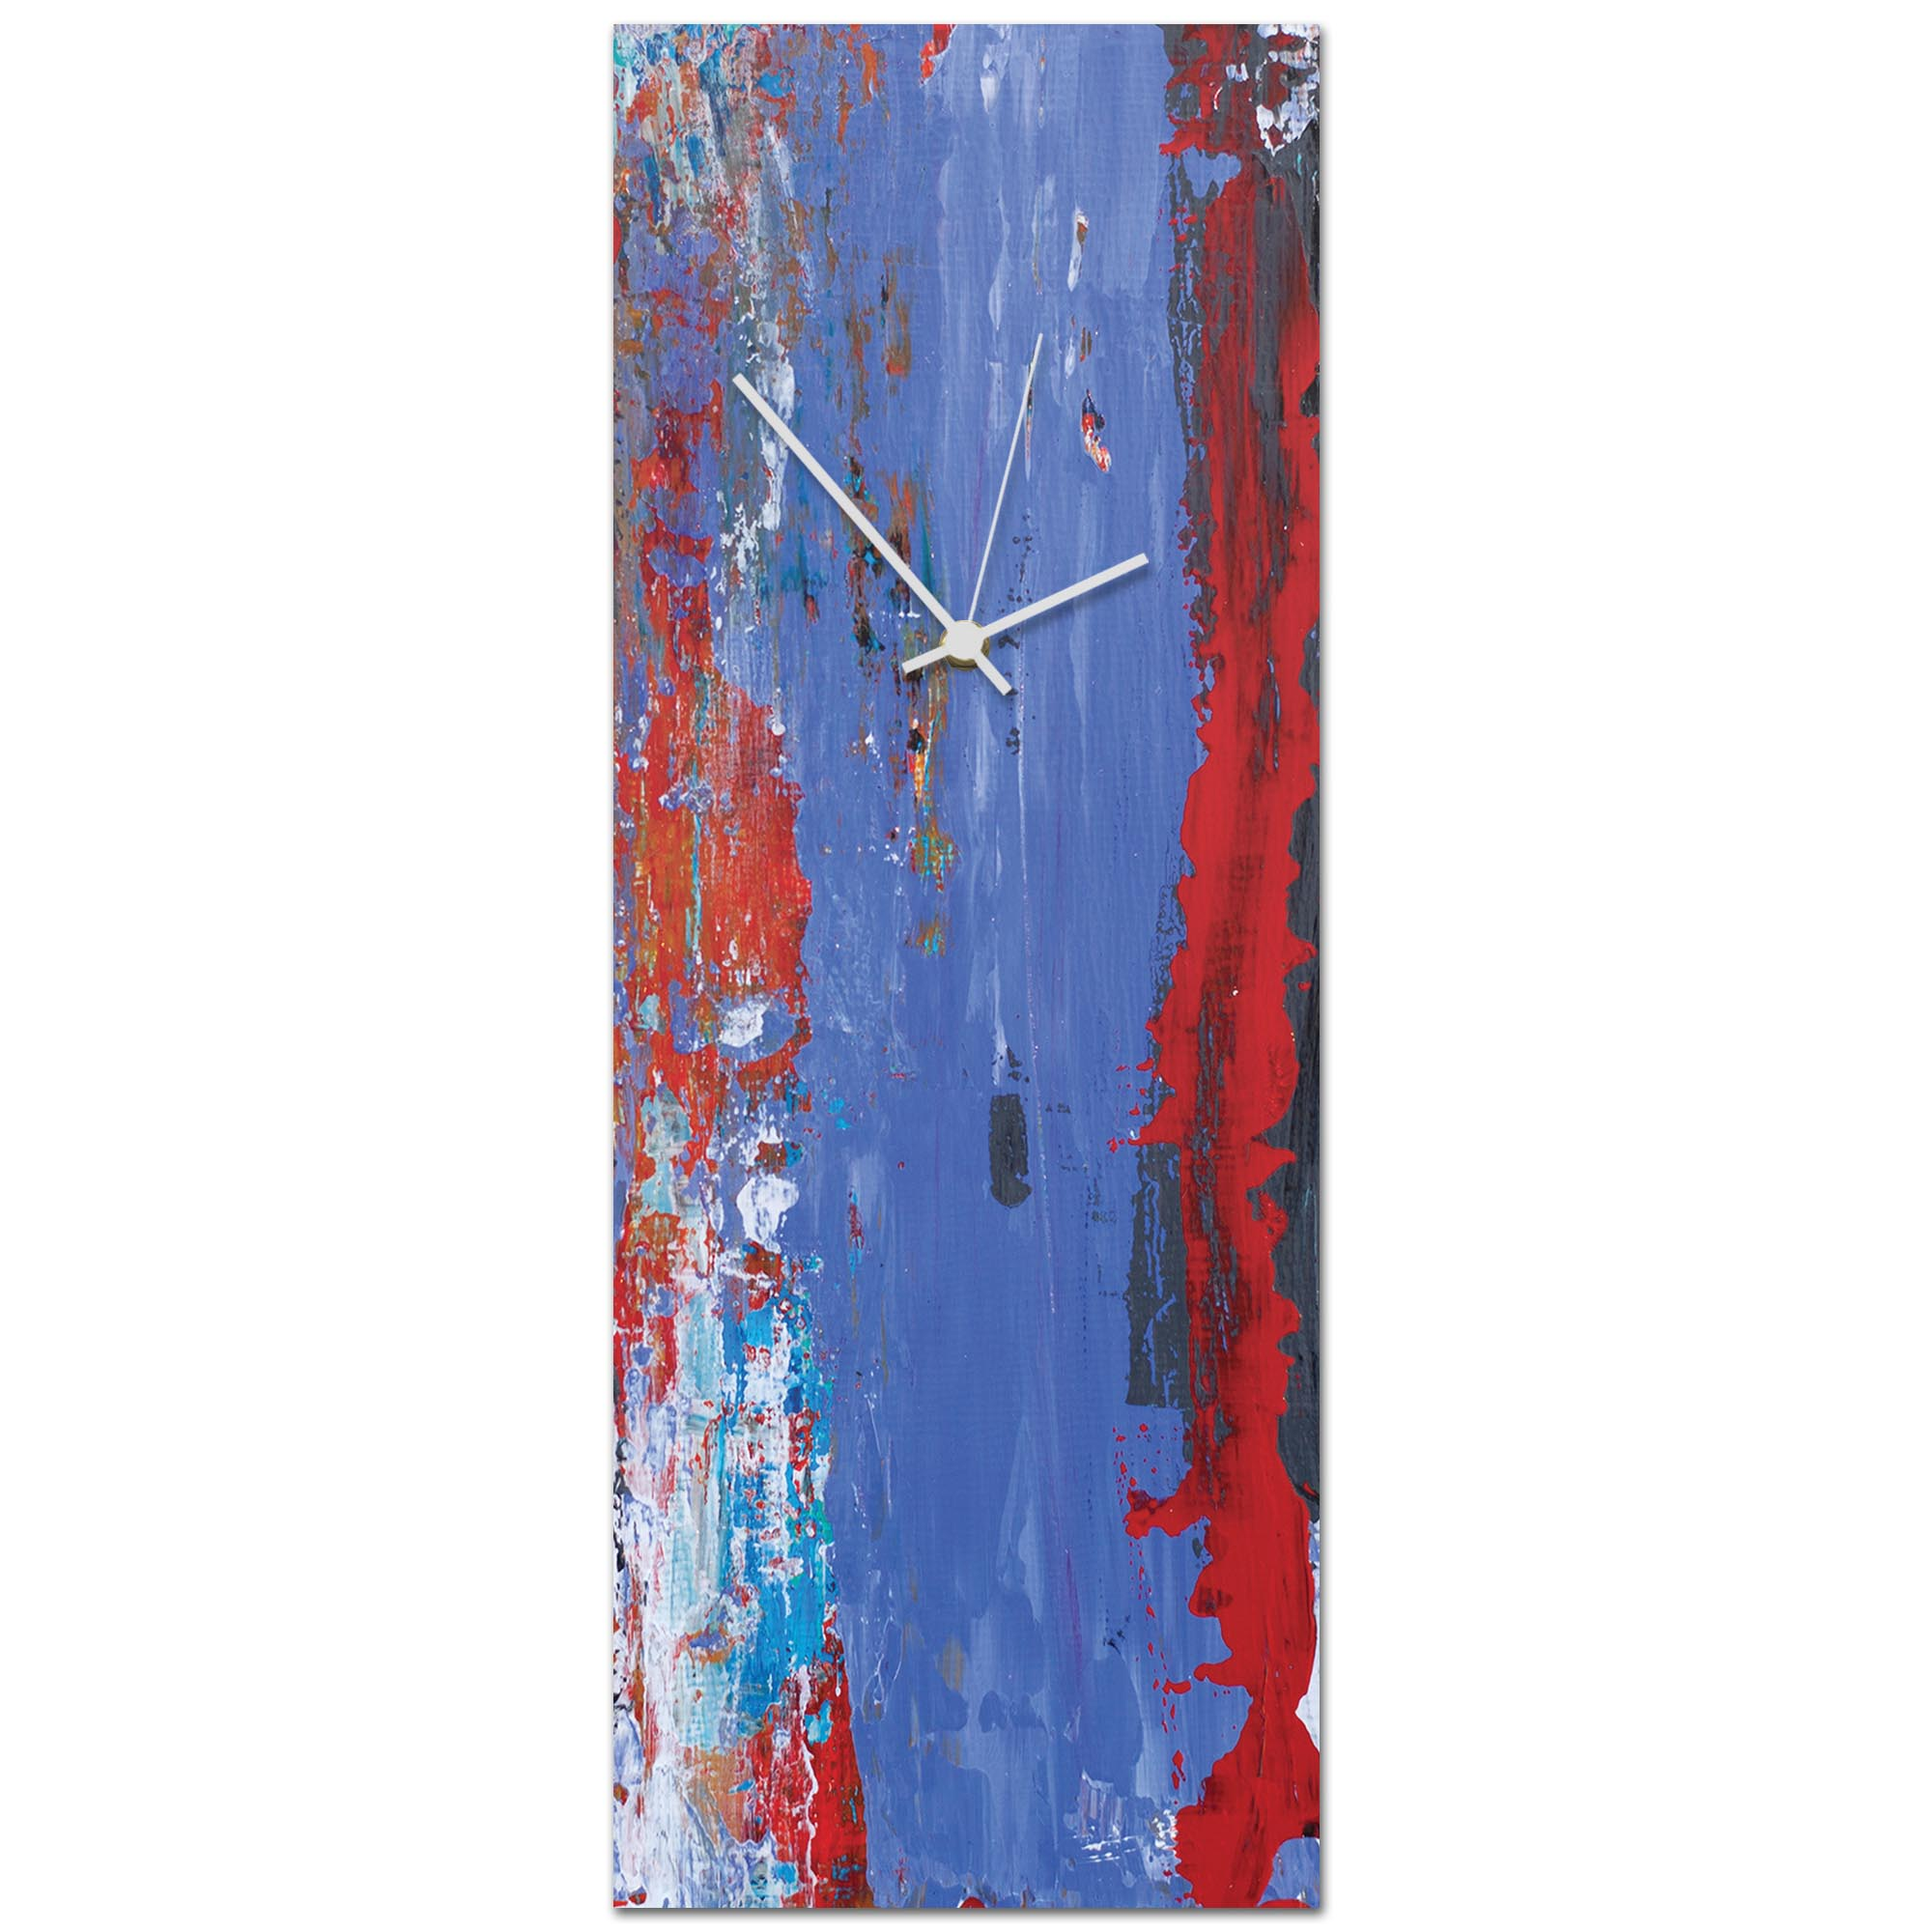 Urban Cool v3 Clock Large 9x24in. Metal